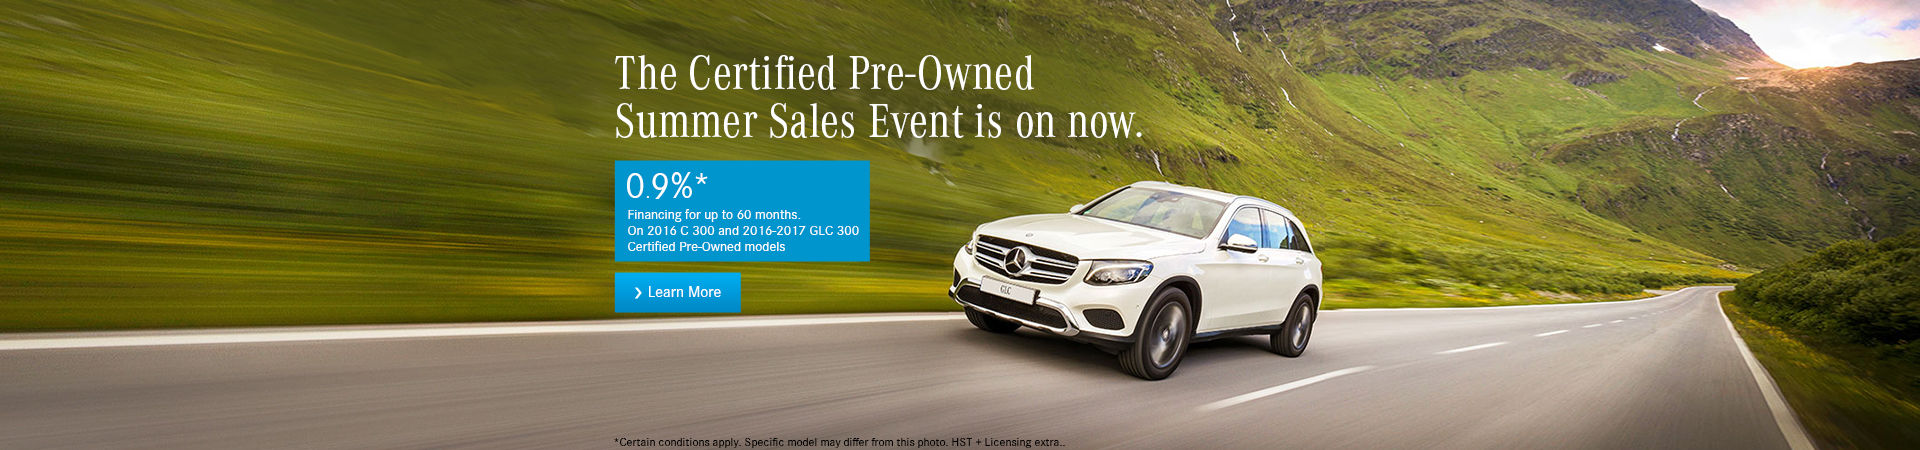 Certified pre-owned vehicle sales event